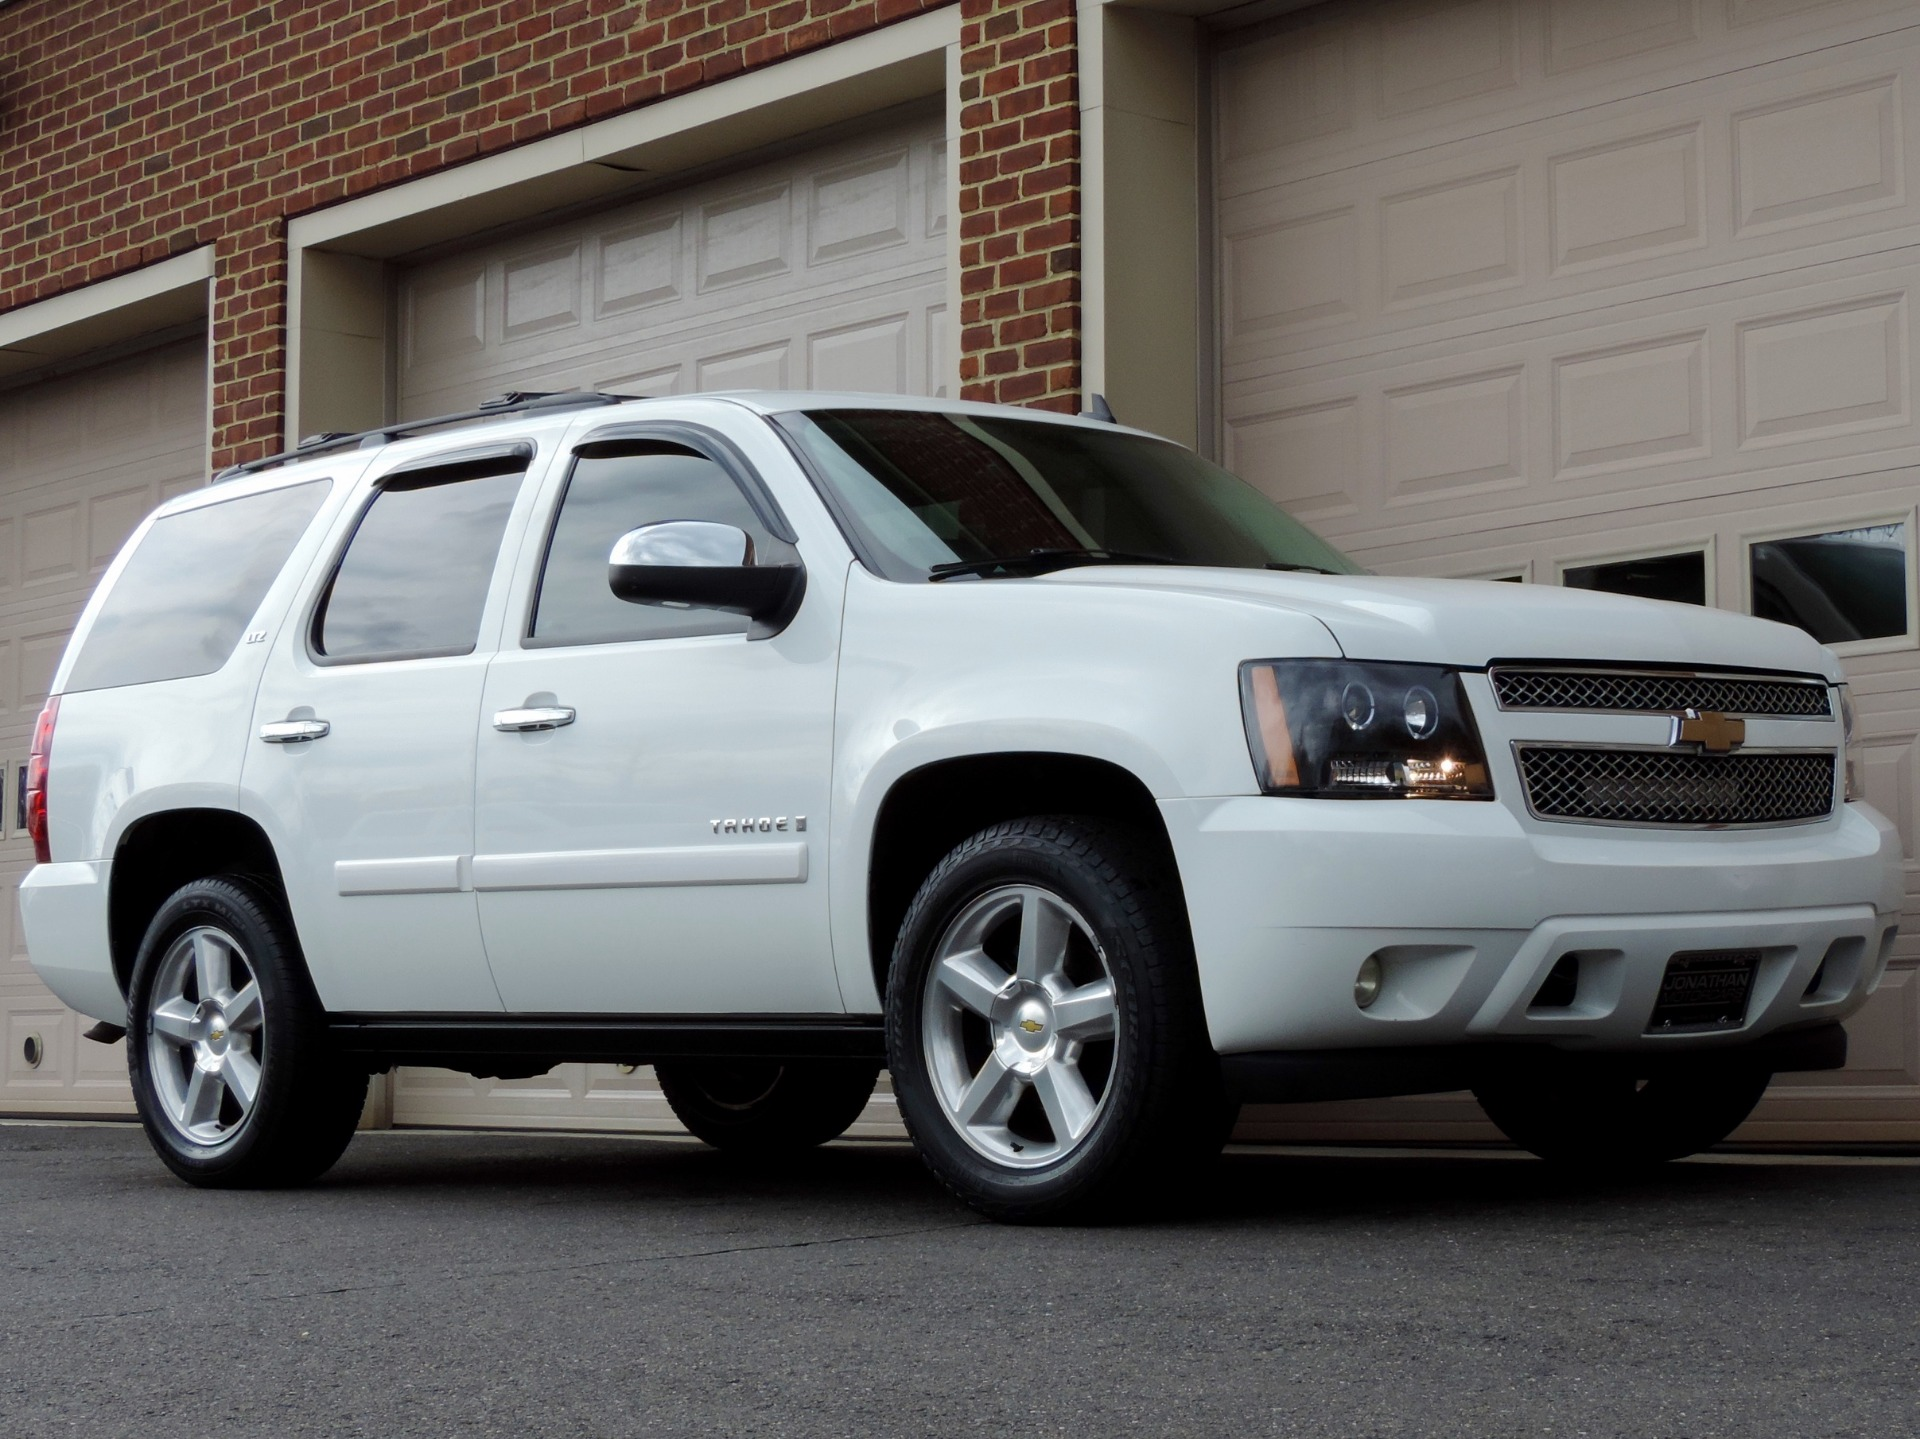 click sales photos full size blue landa tahoe ga chevrolet alpharetta auto to view here